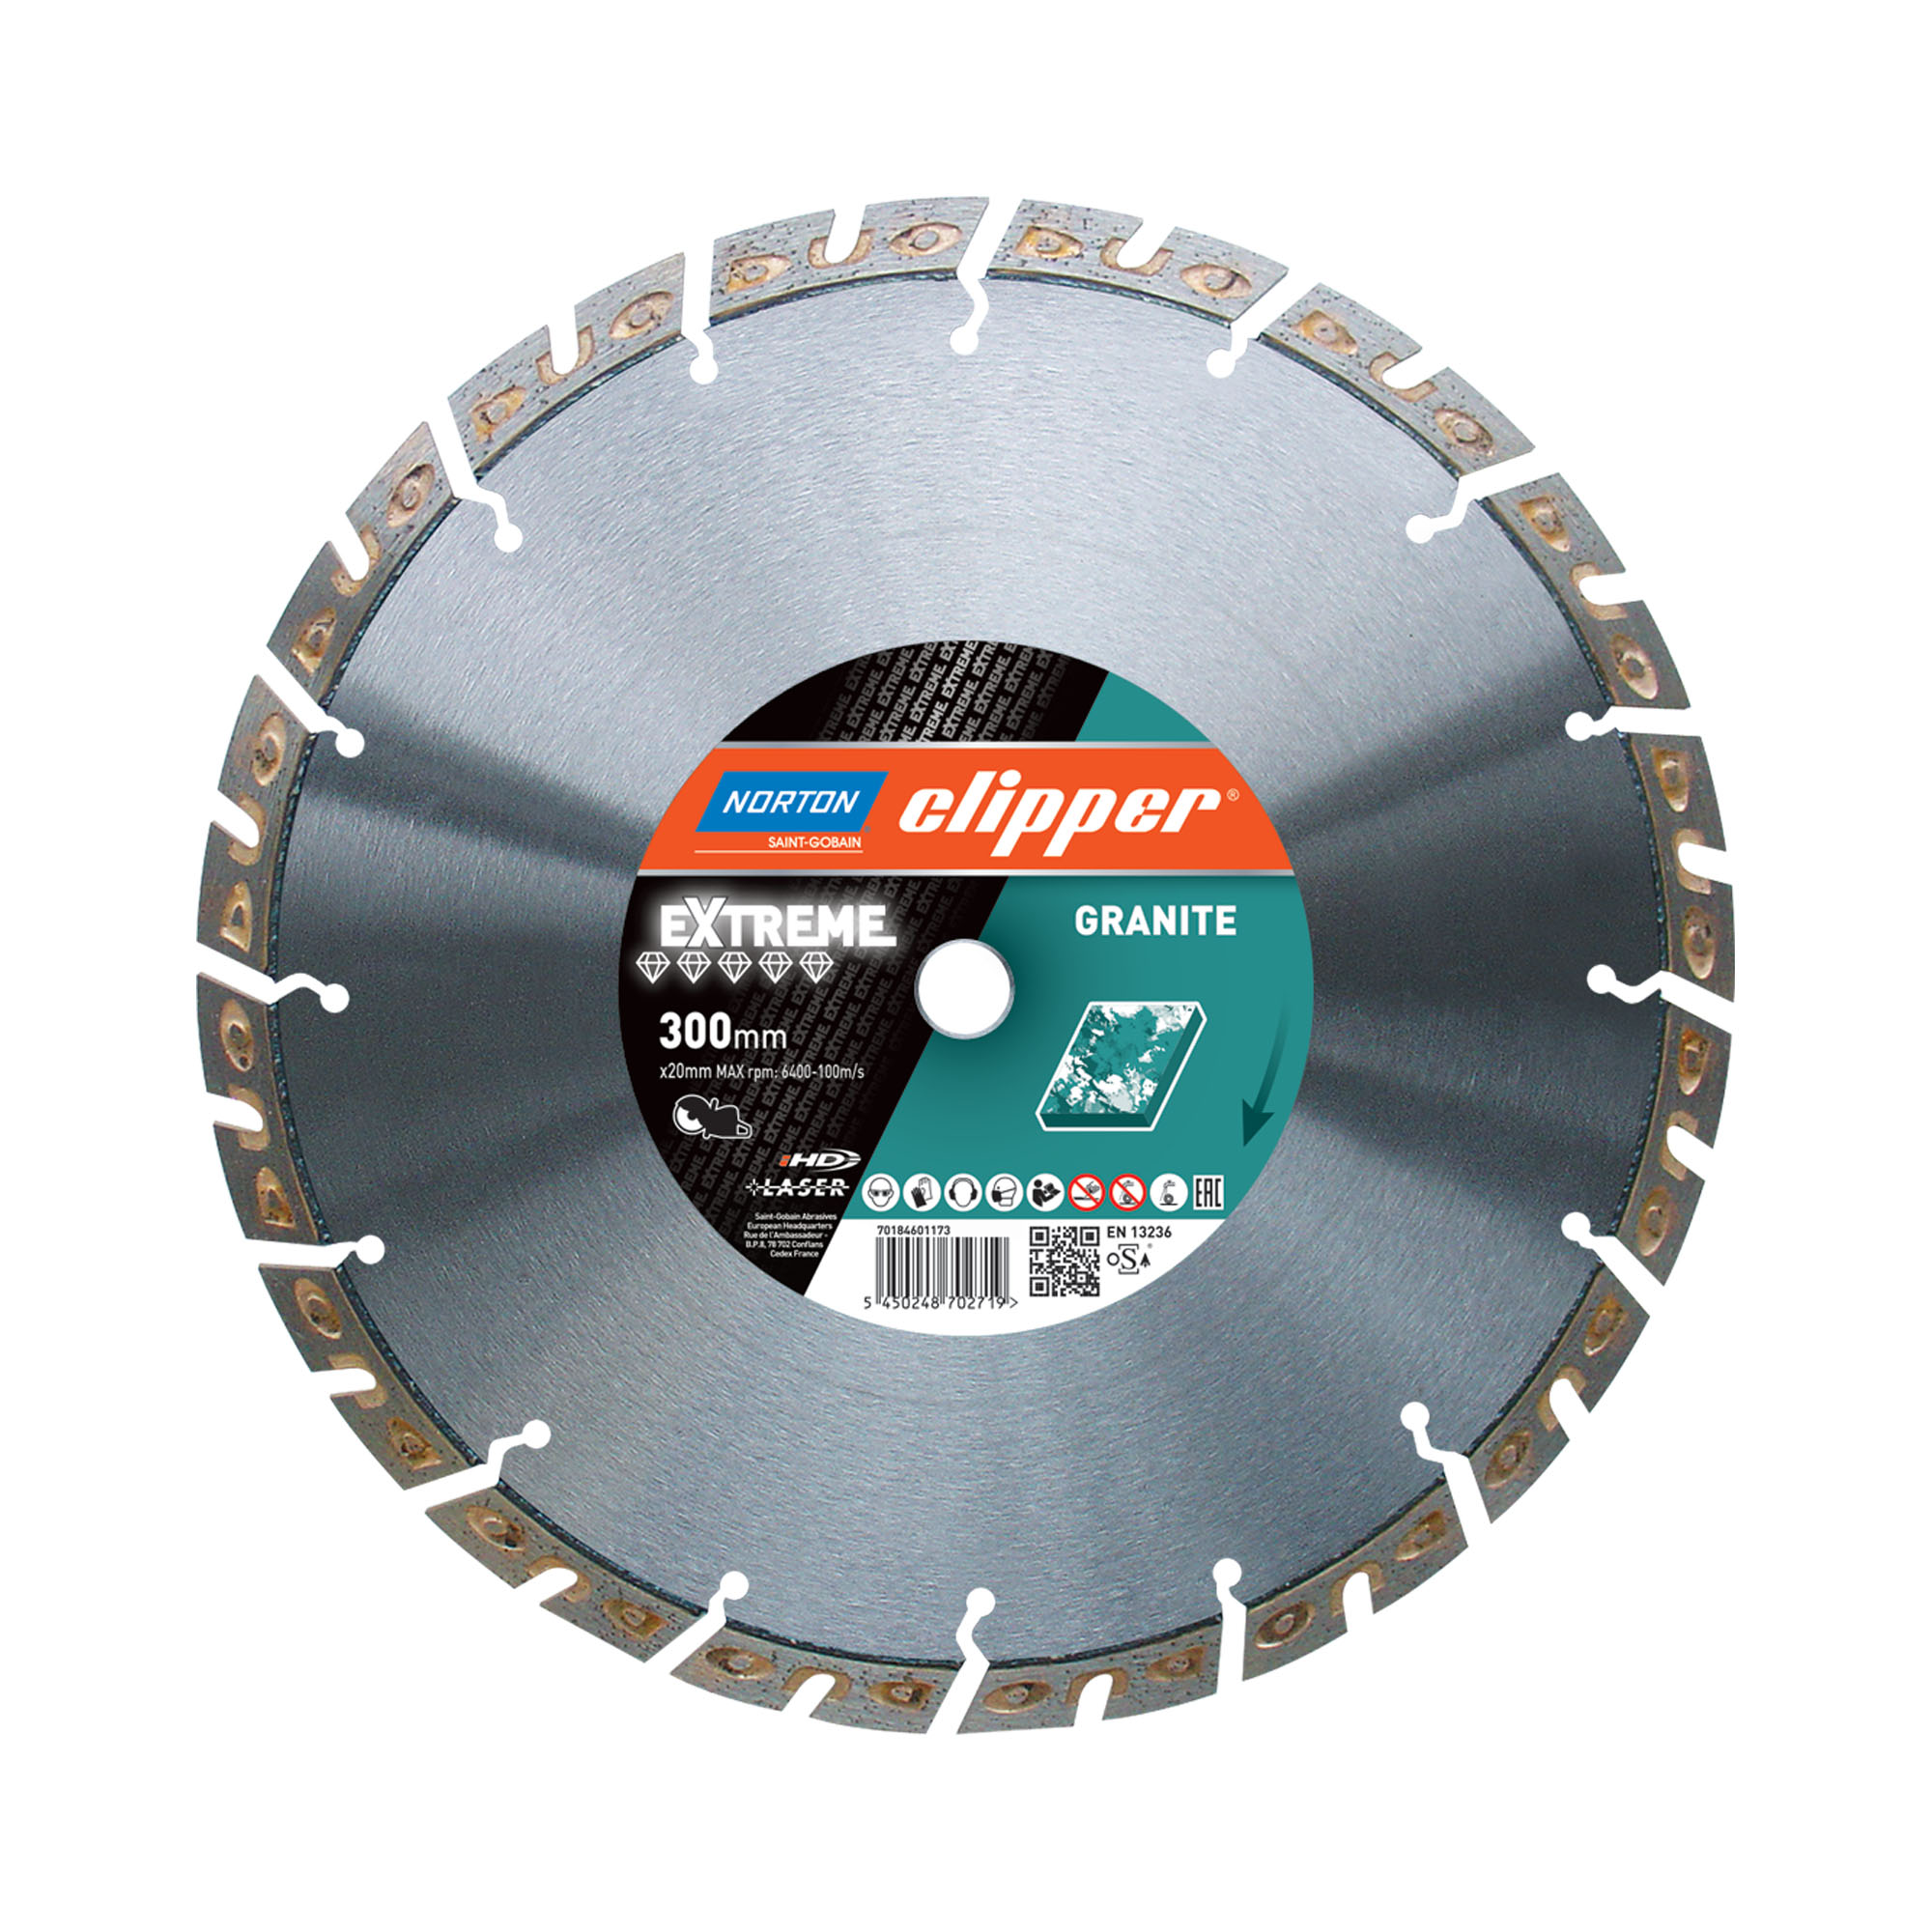 Extreme Diamond Blade from Norton